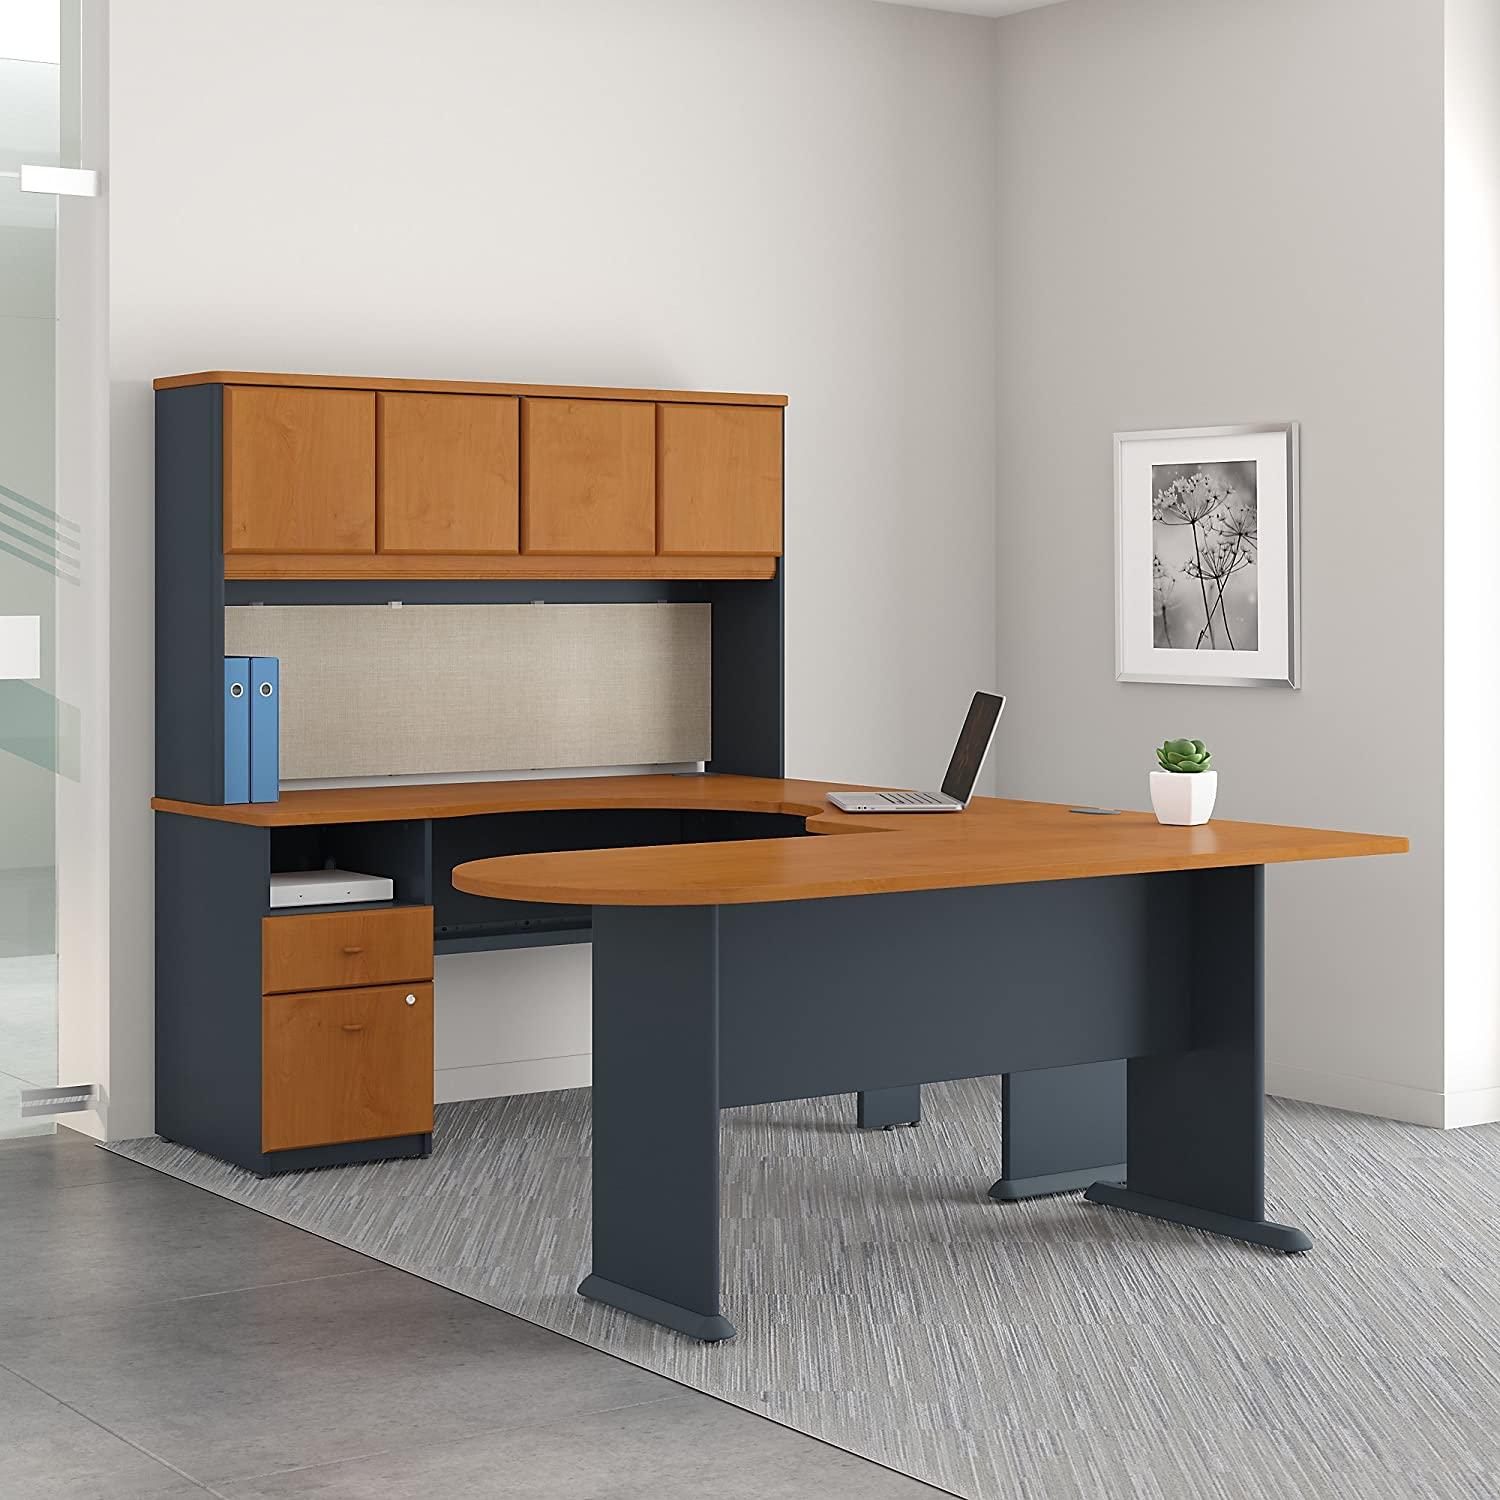 Series A U Shaped Desk with Hutch - Peninsula and Storage